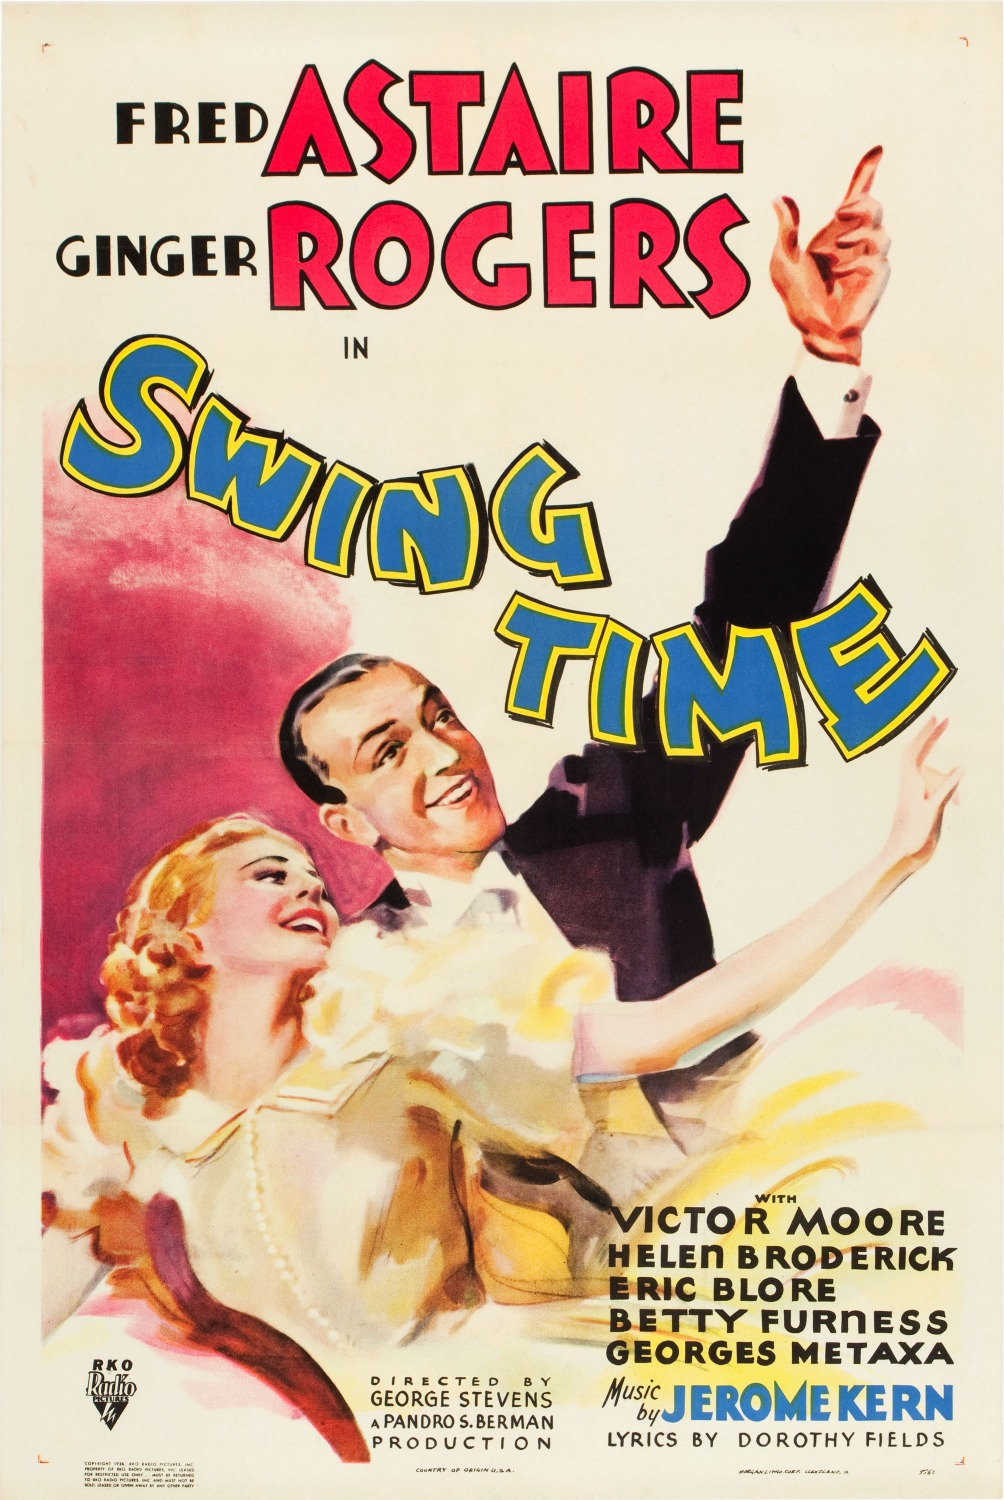 (1936) A performer and gambler travels to New York City to raise the $25,000 he needs to marry his fiancée, only to become entangled with a beautiful aspiring dancer. -